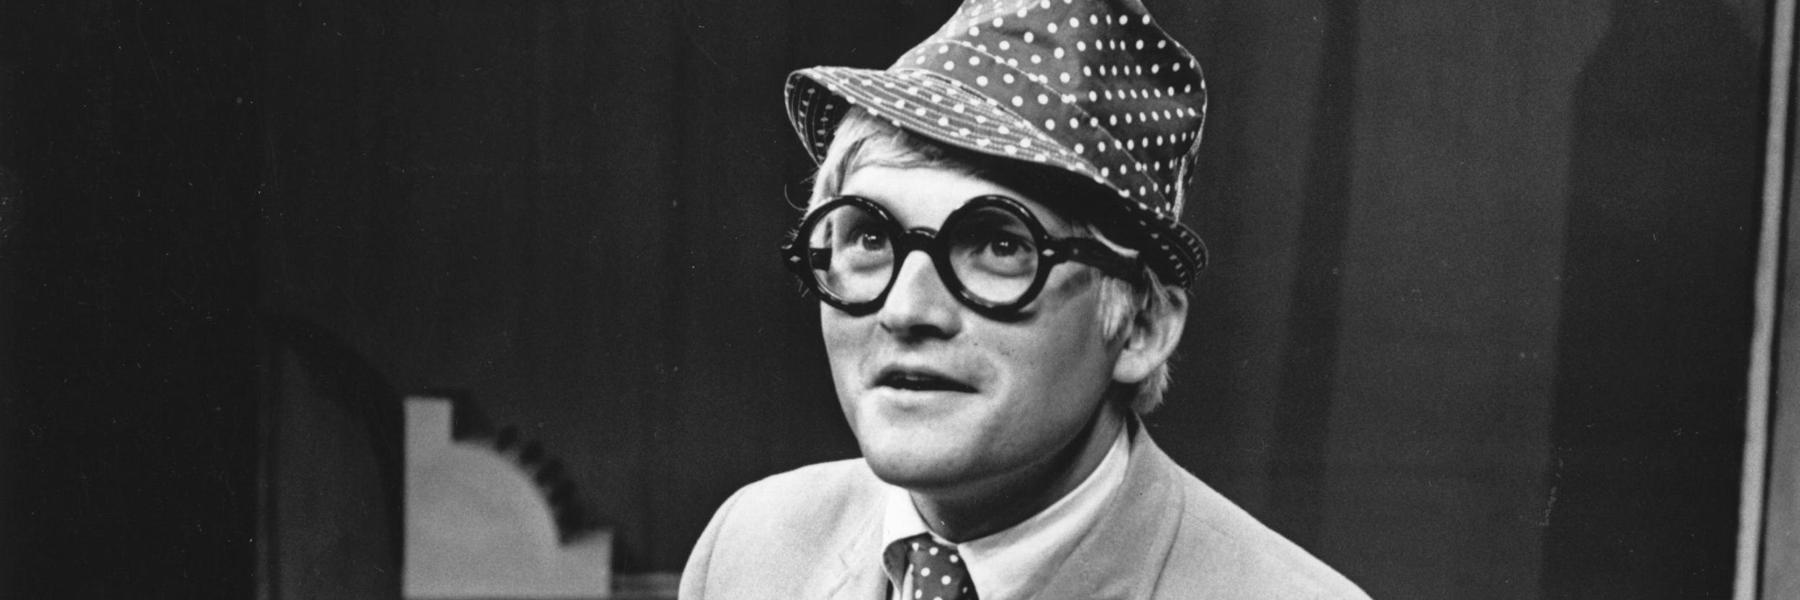 David Hockney an eyewear icon